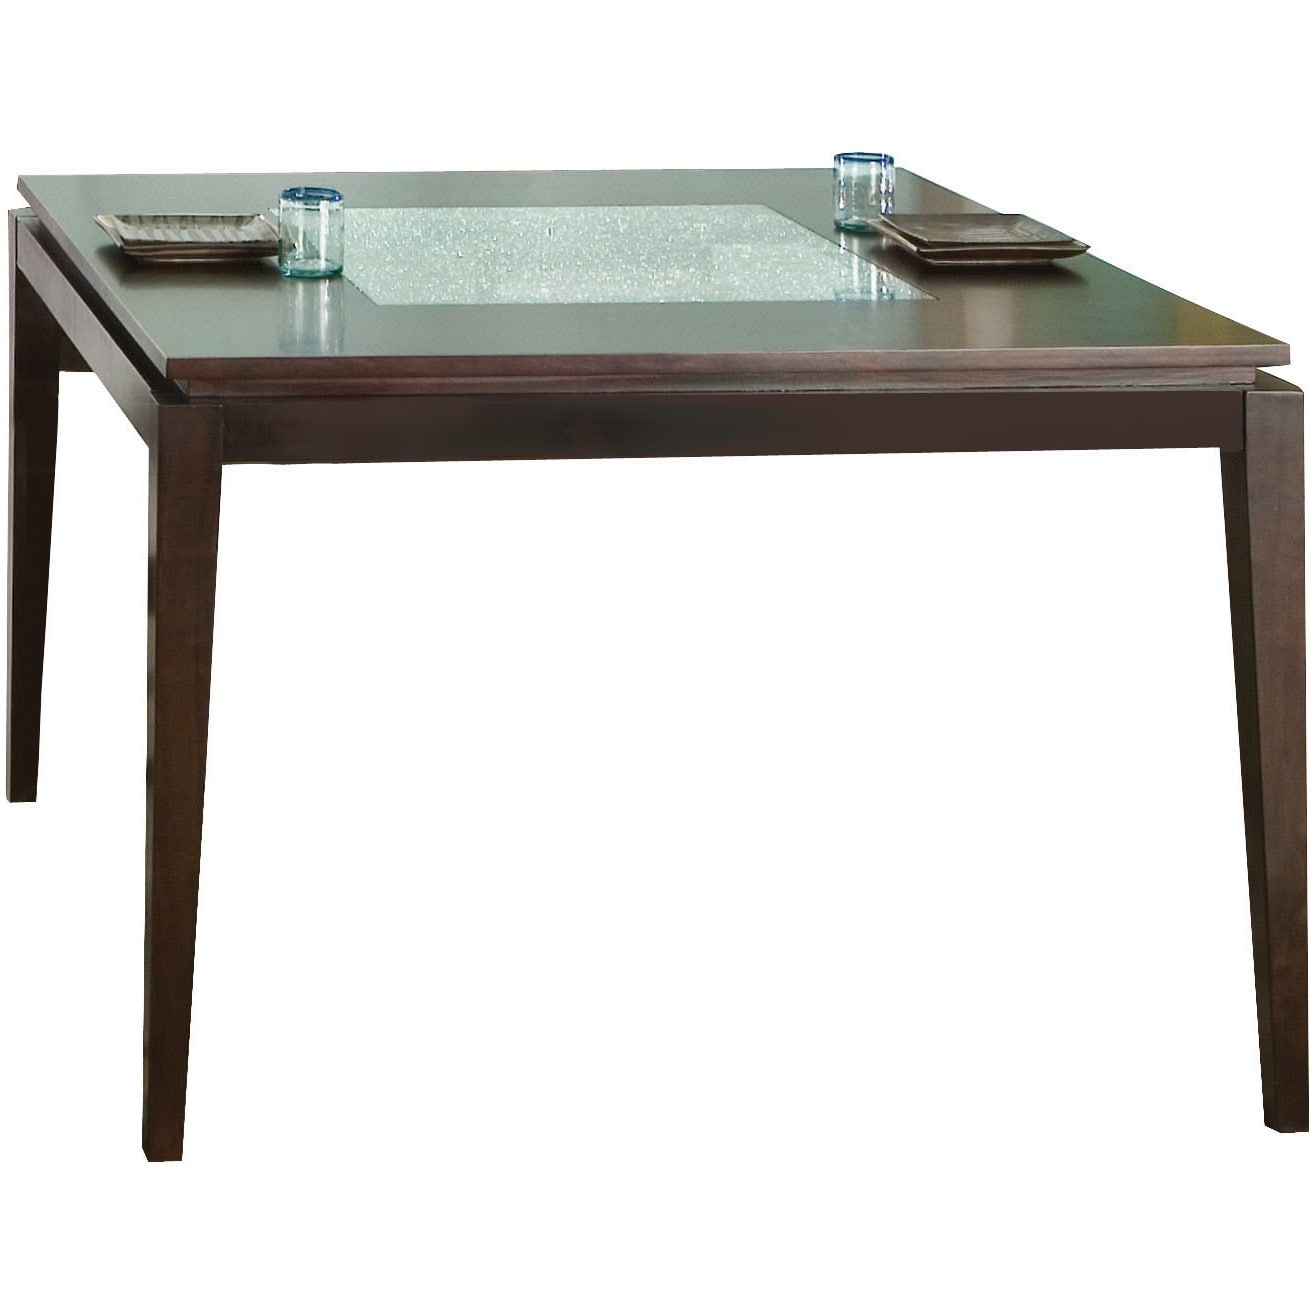 Dining Room Furniture - Spiga Counter-Height Table